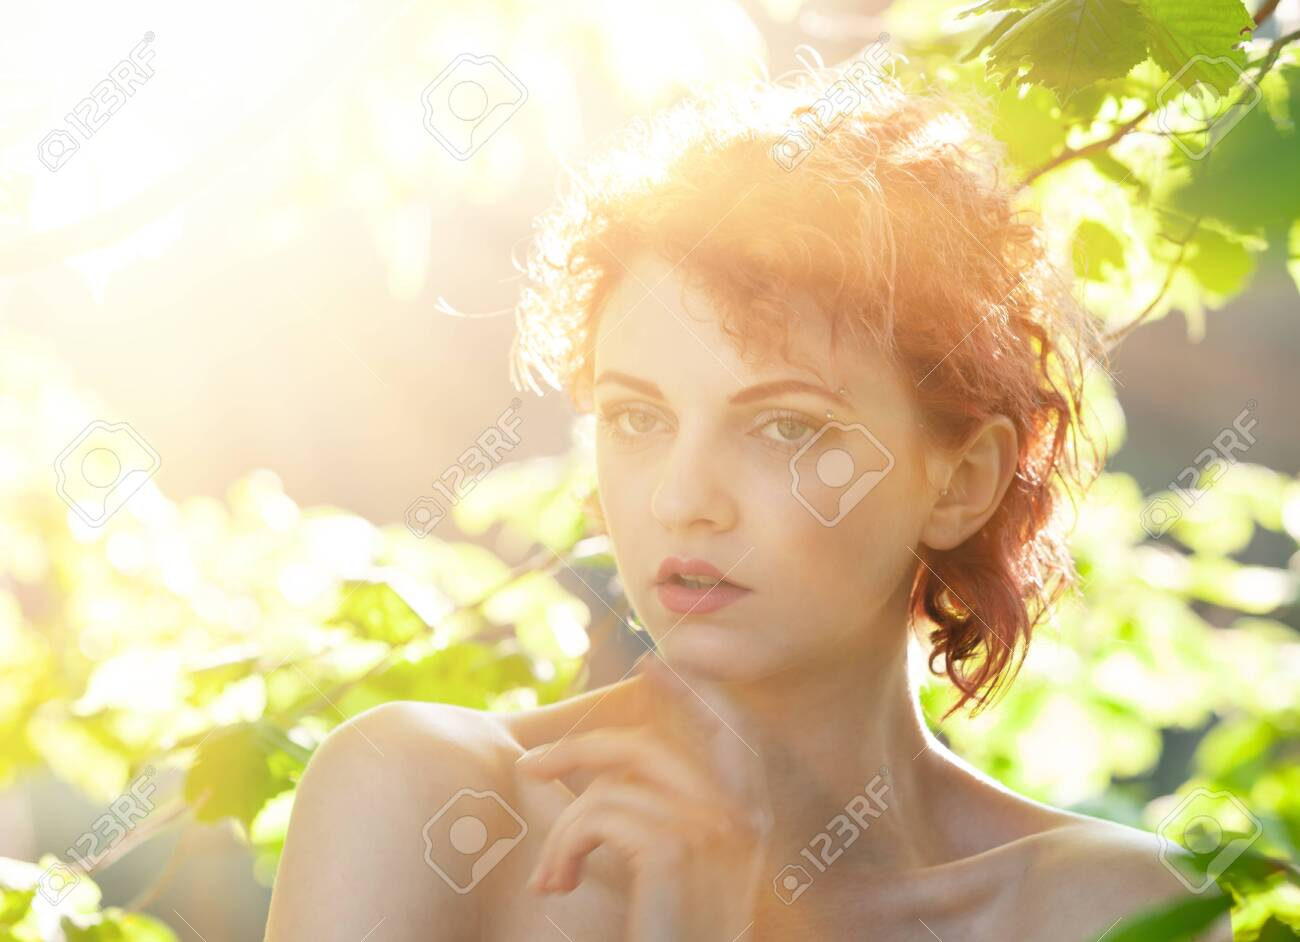 Portrait of a young red-haired woman among the foliage of trees illuminated by the suns rays - 155881142